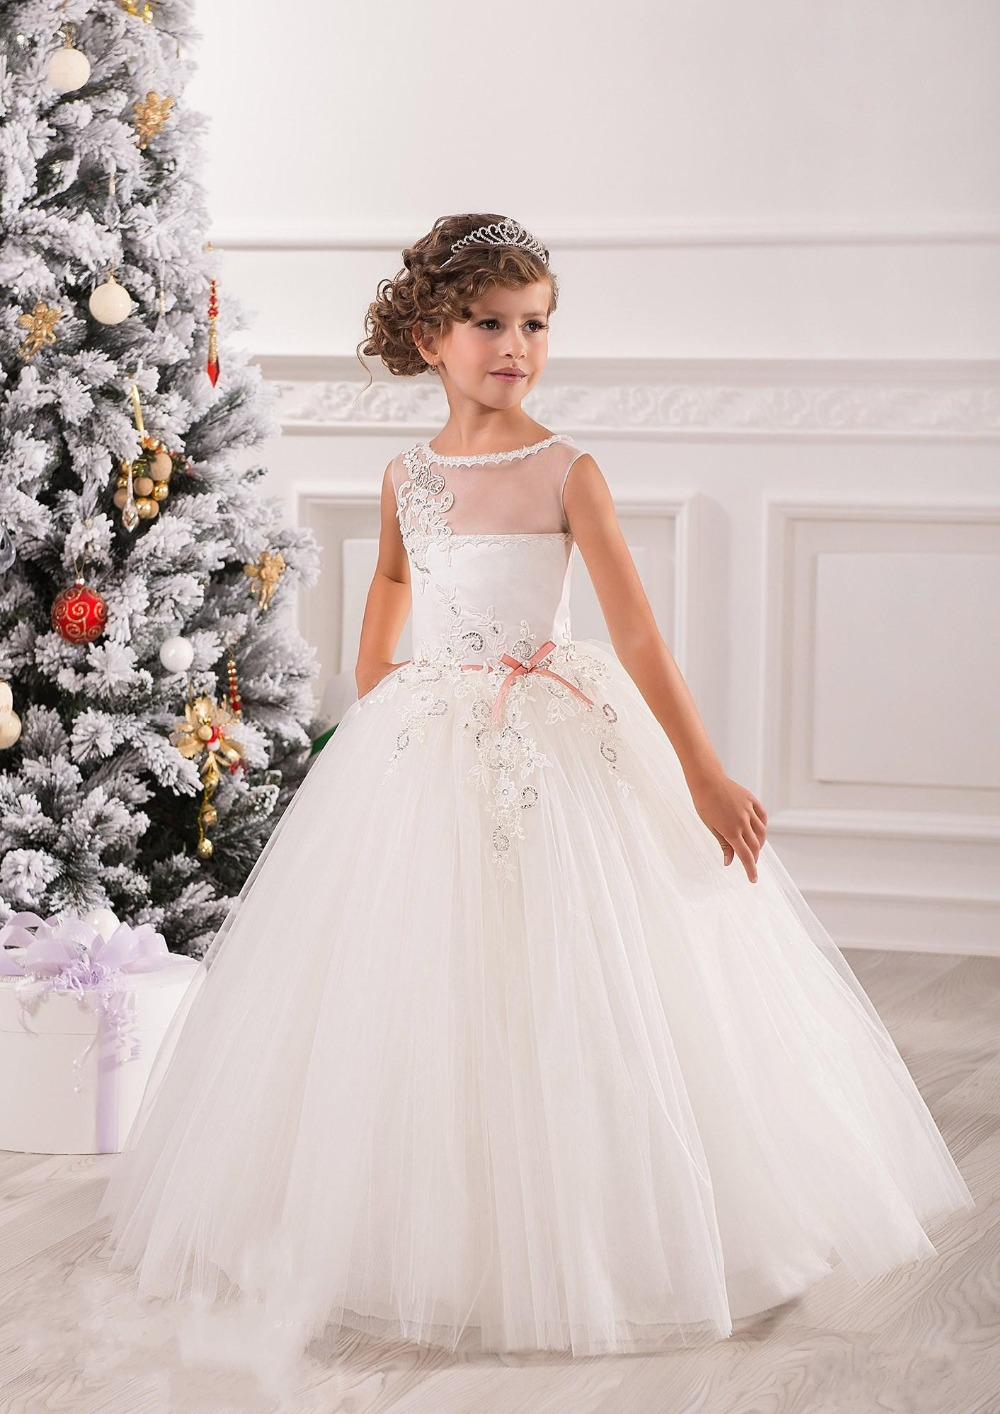 Elegant white lace ball gowns tulle flower girl dresses for Dresses for teenagers for weddings